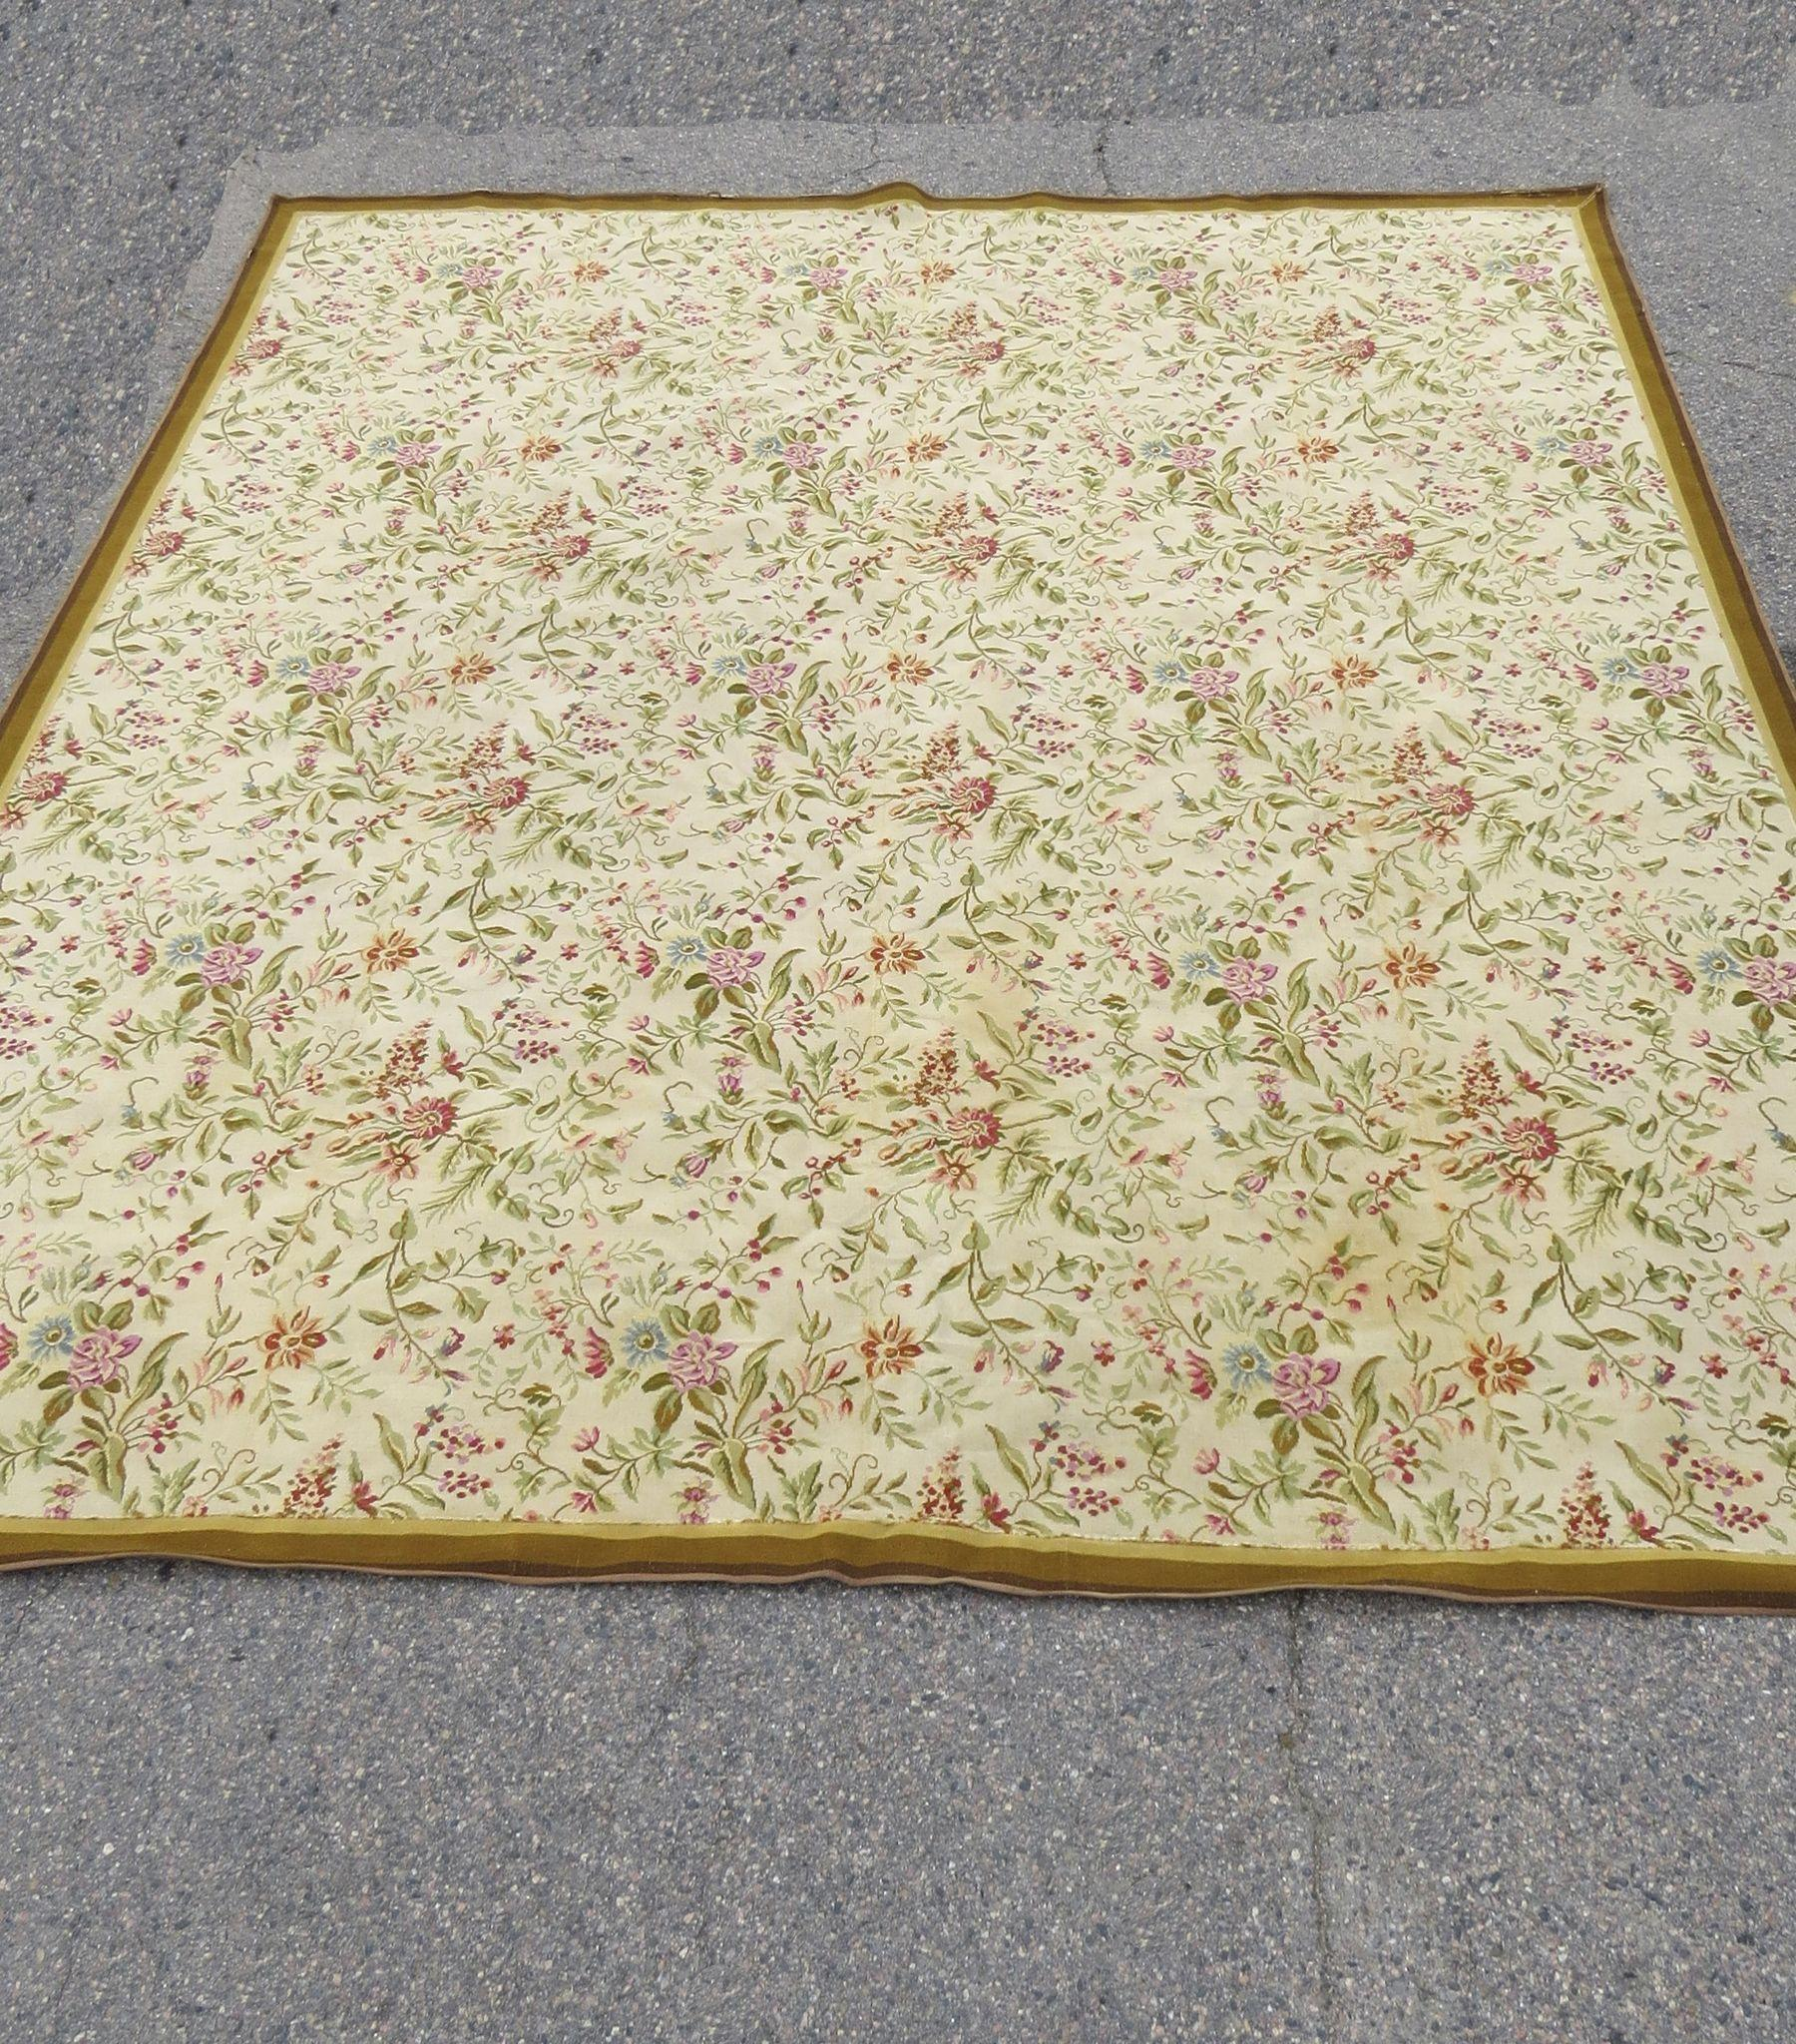 Large Mid Century Modern Rug By Stark Carpet From